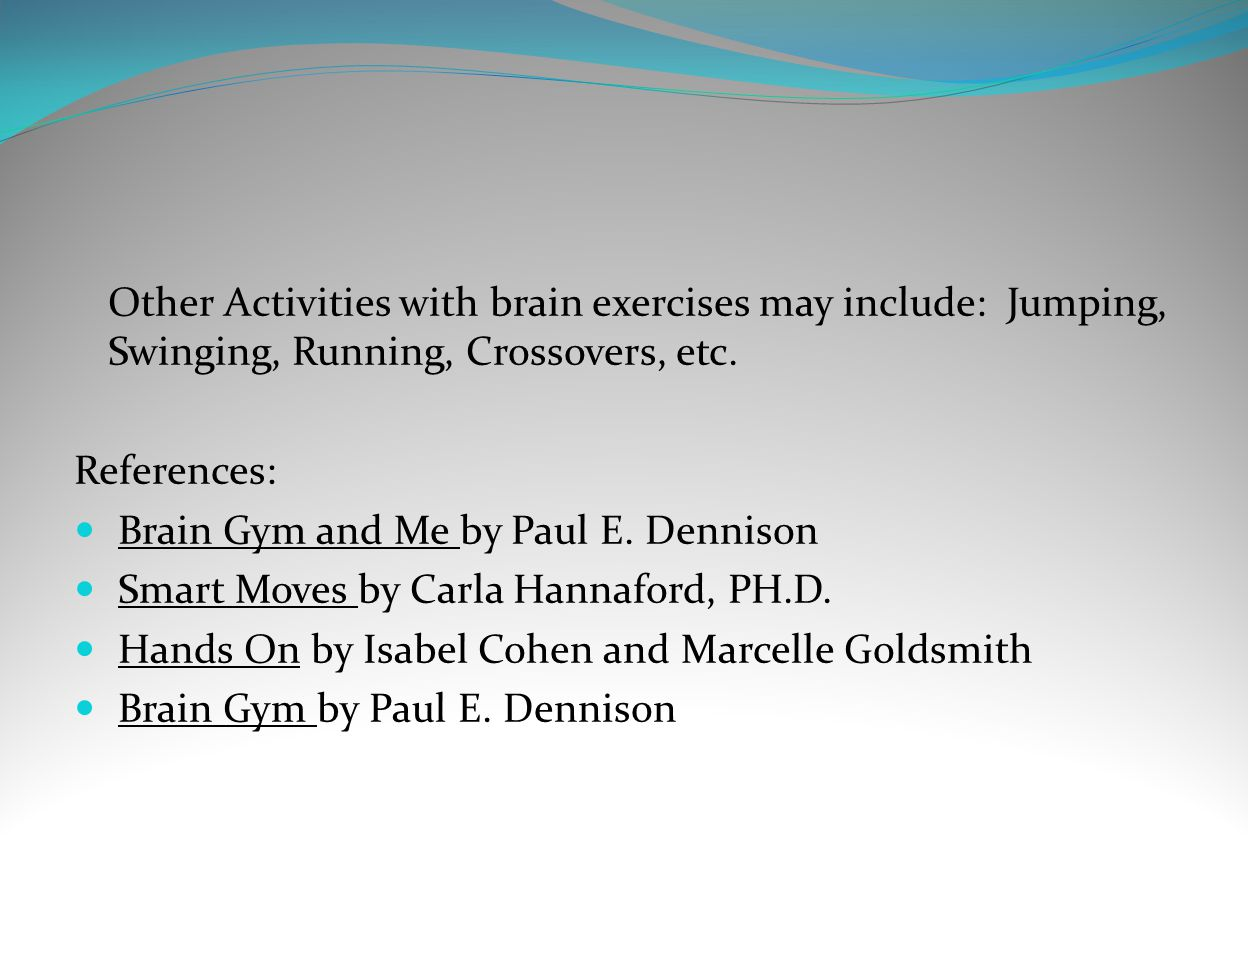 Other Activities with brain exercises may include: Jumping, Swinging, Running, Crossovers, etc.